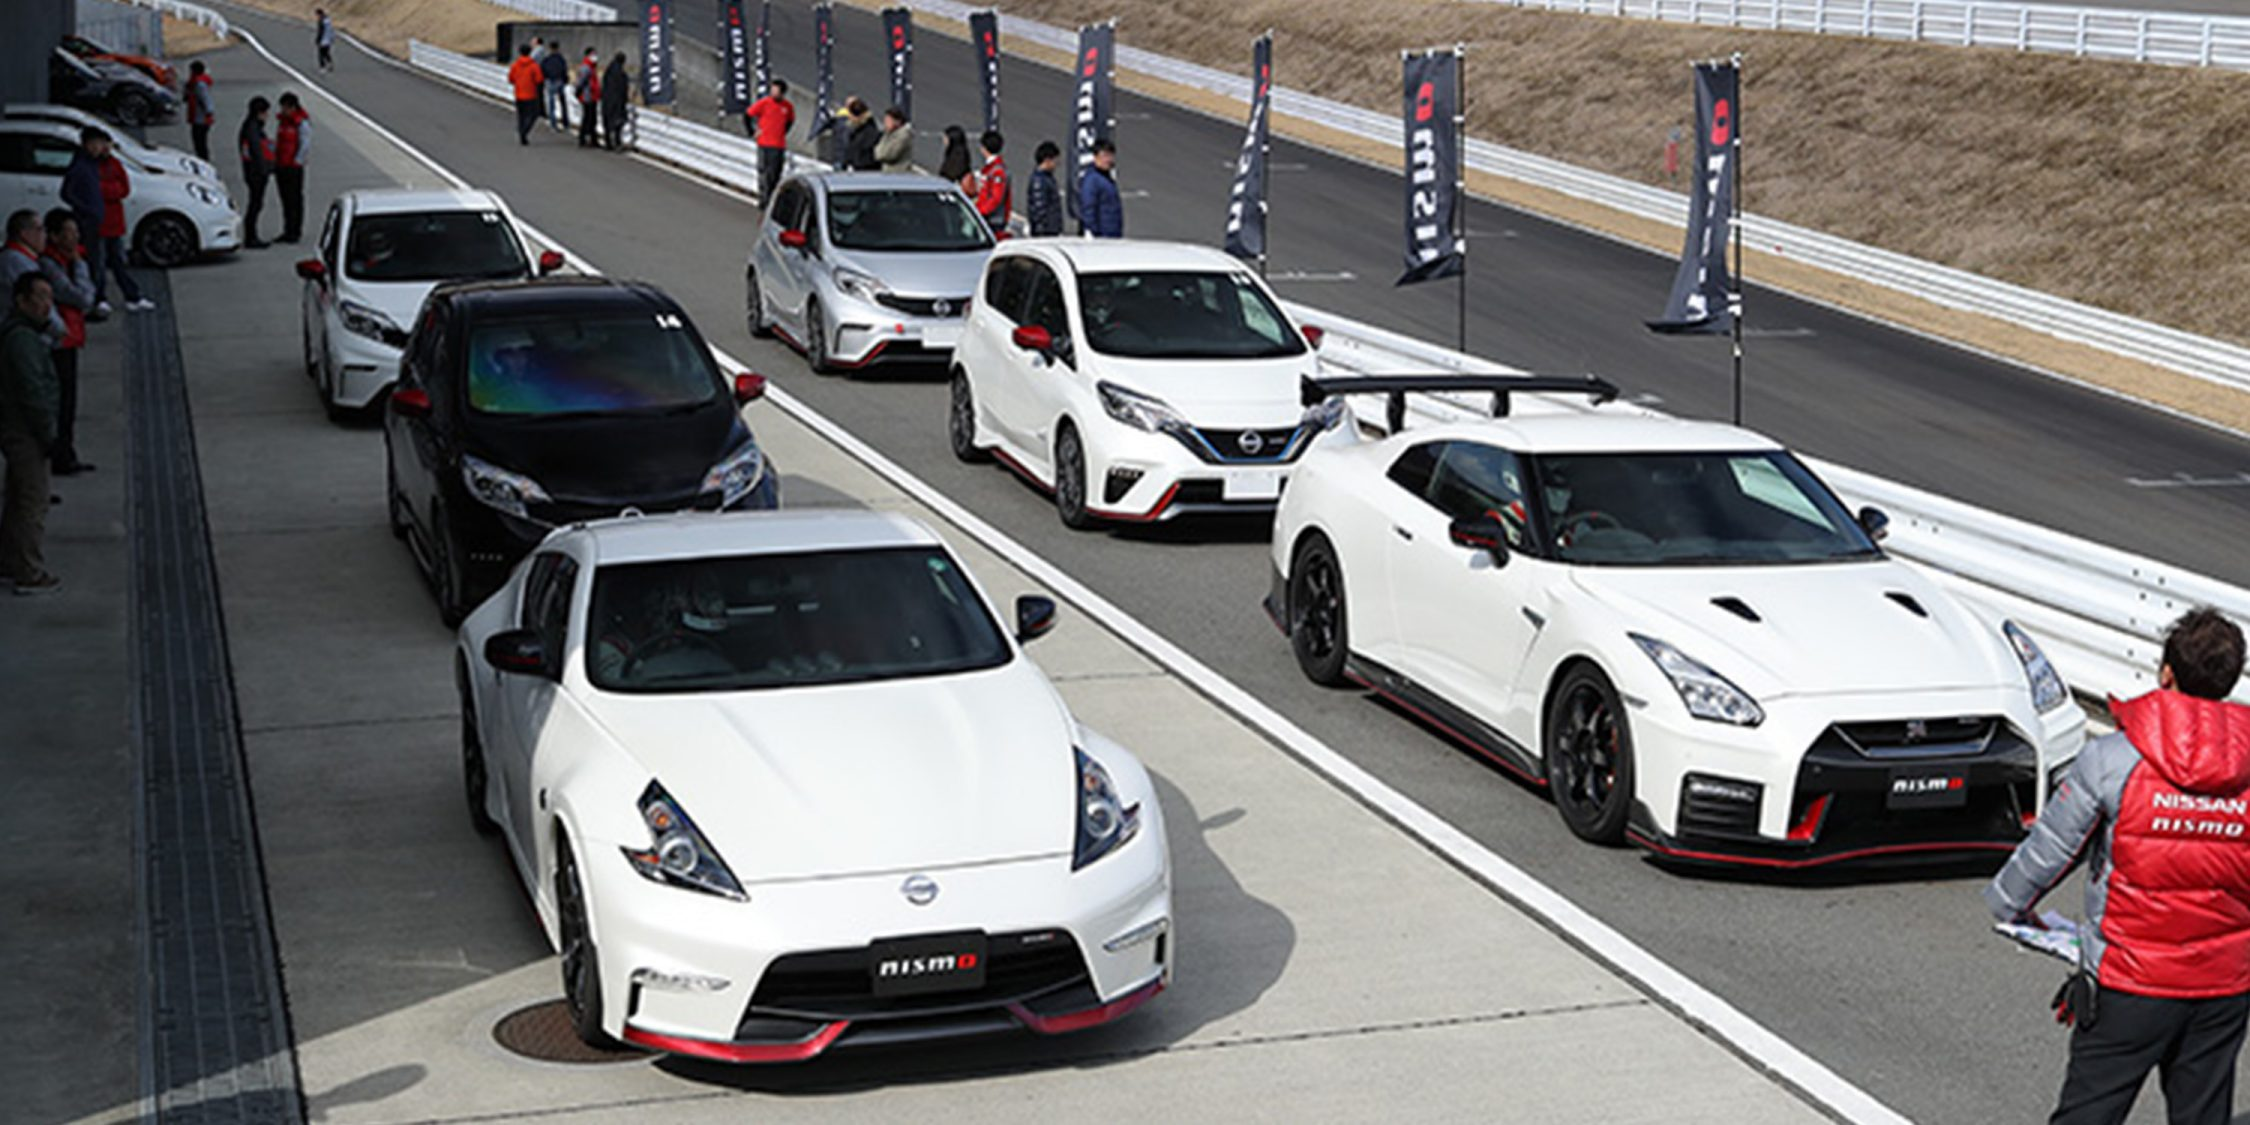 Gama do Nismo Driving Academy